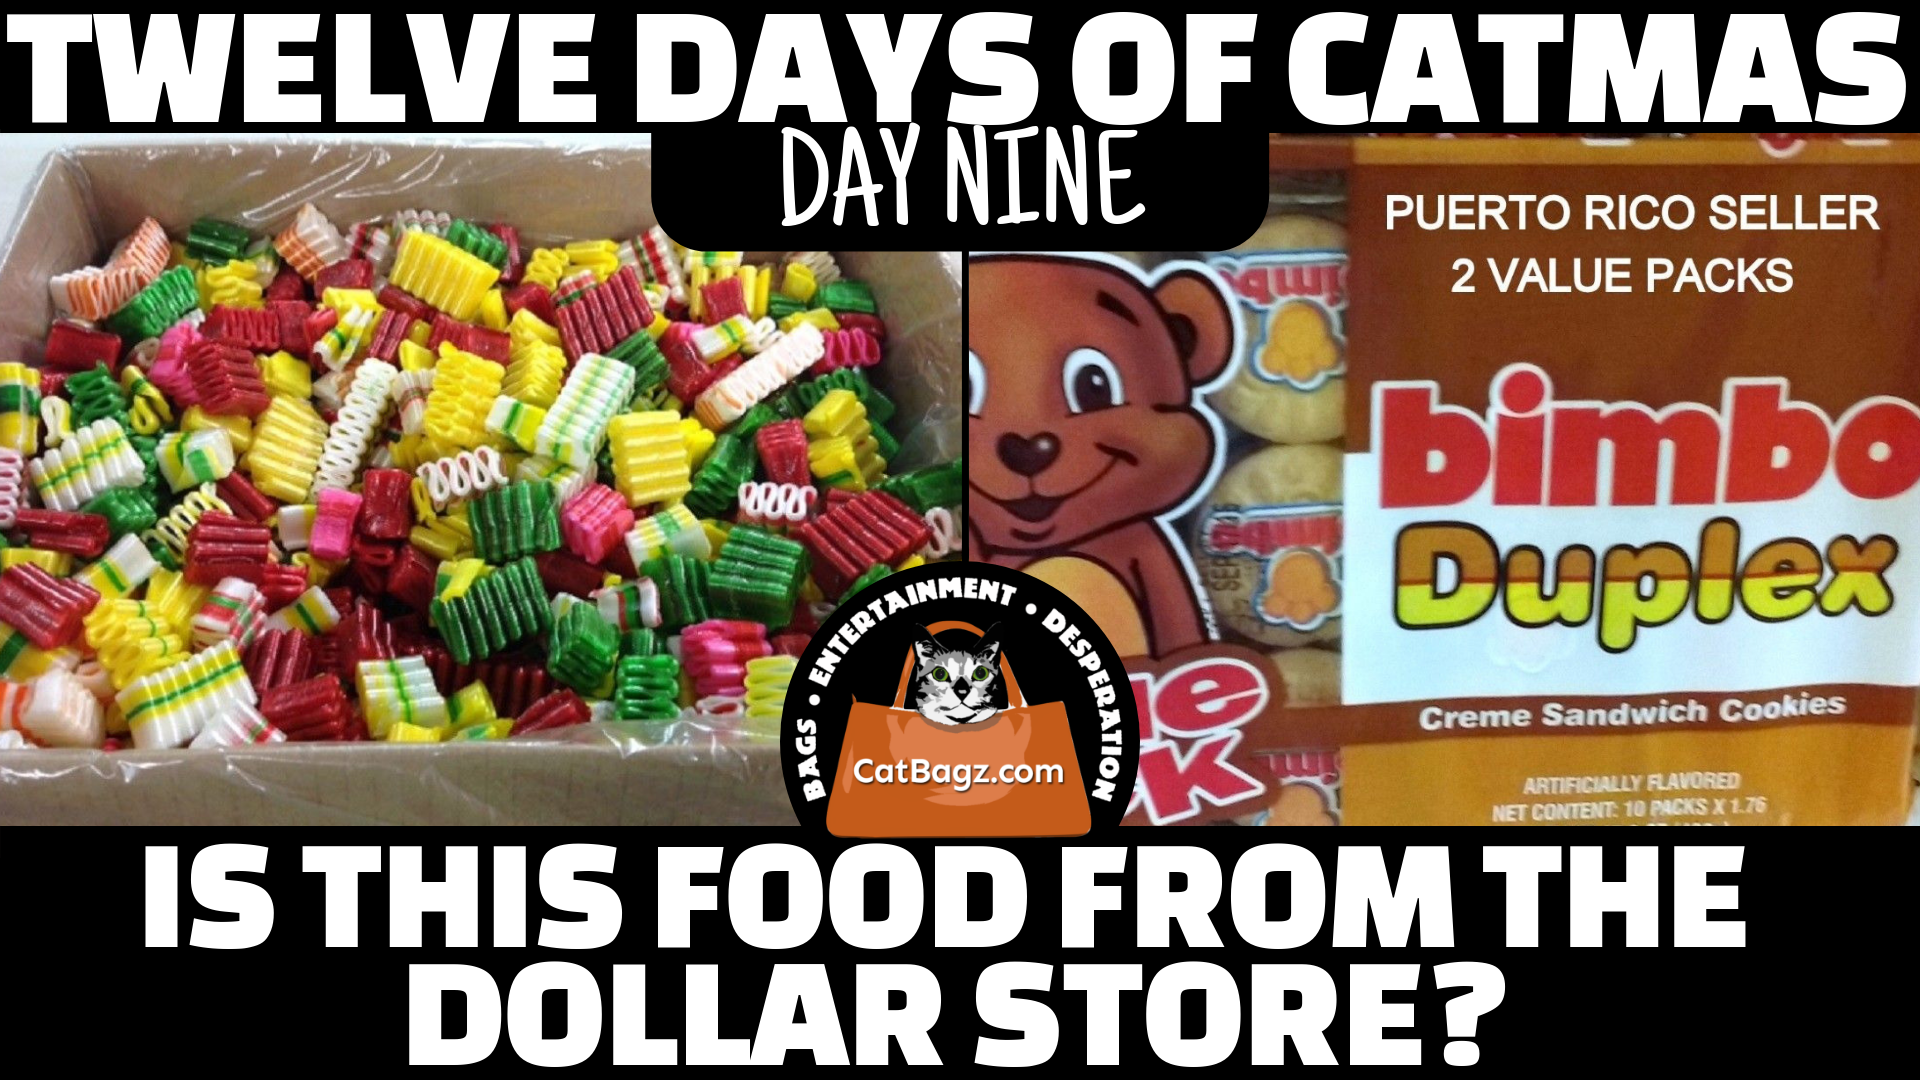 Twelve Days of Catmas - Day Nine - Is This Food From The Dollar Store